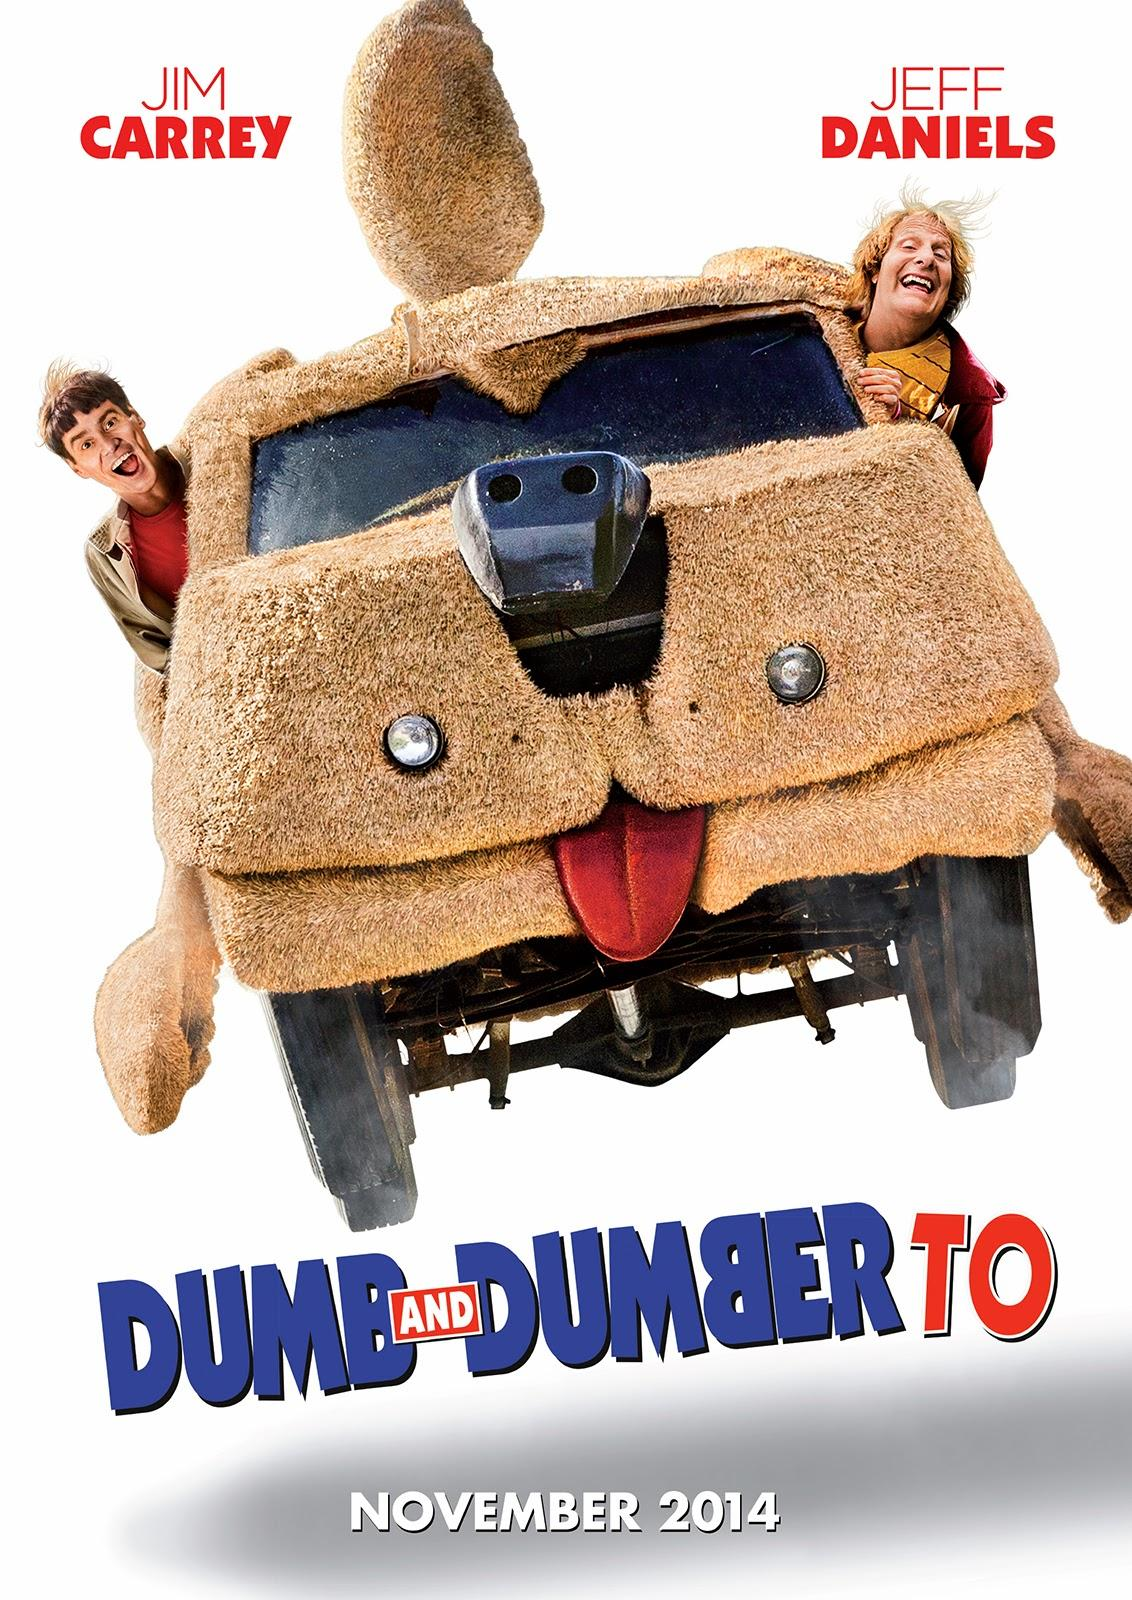 CINEMA: Dumb & Dumber De (2014), intelligence superficielle / Dumb and Dumber To (2014), superficial intelligence